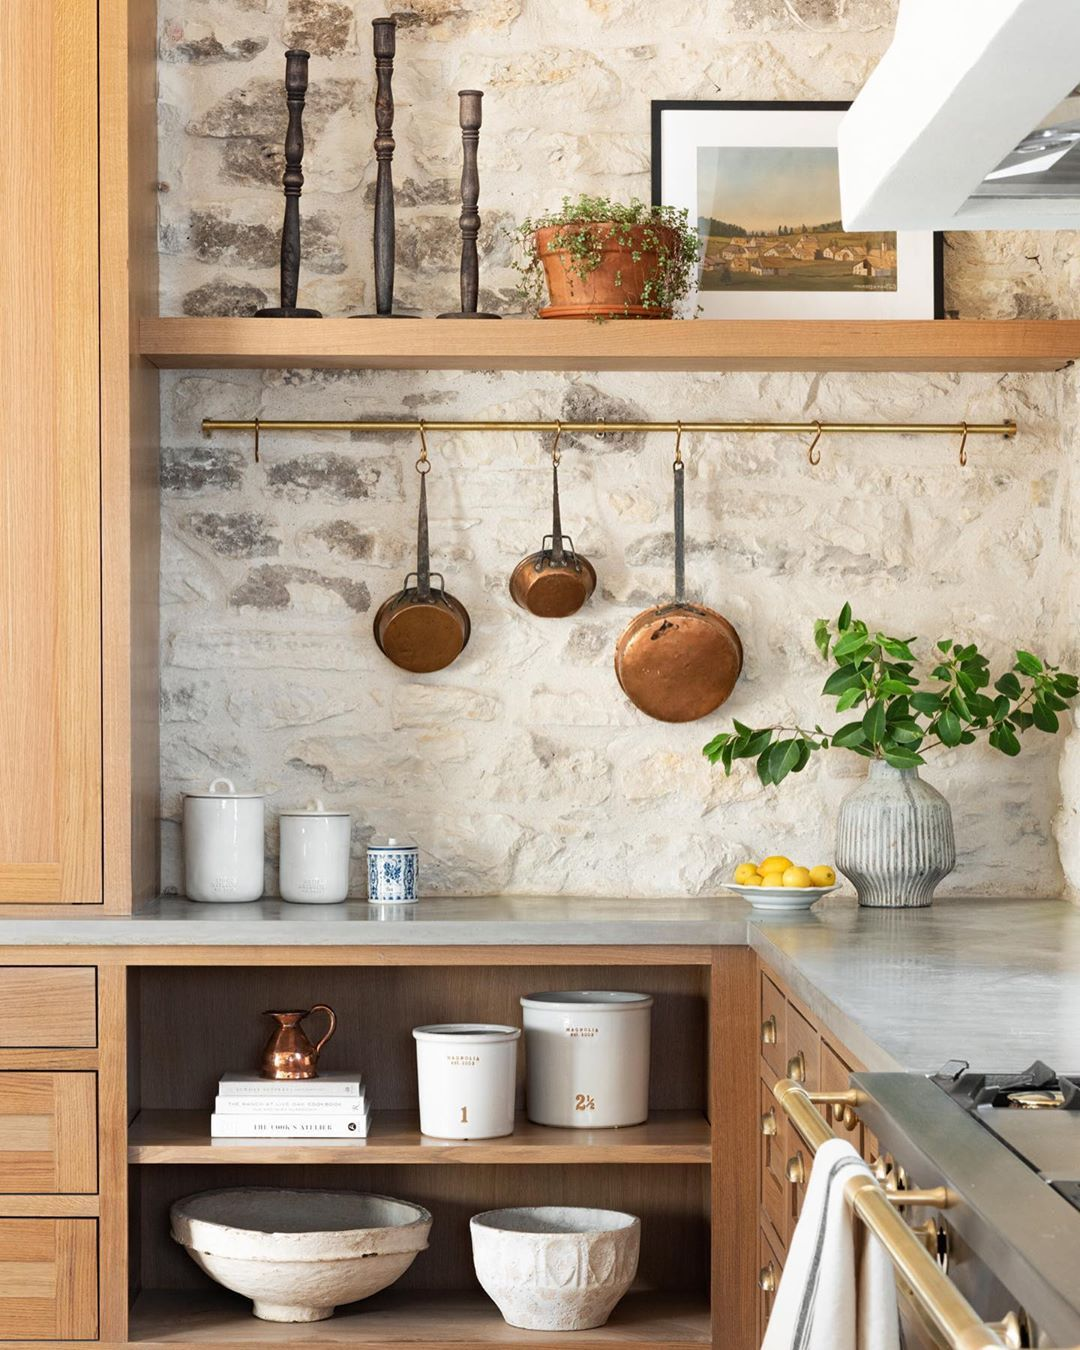 Joanna Stevens Gaines On Instagram Magnolia Table Volume 2 Comes Out Tomorrow And To Celebrate Kitchen Design Joanna Gaines Kitchen Magnolia Kitchen